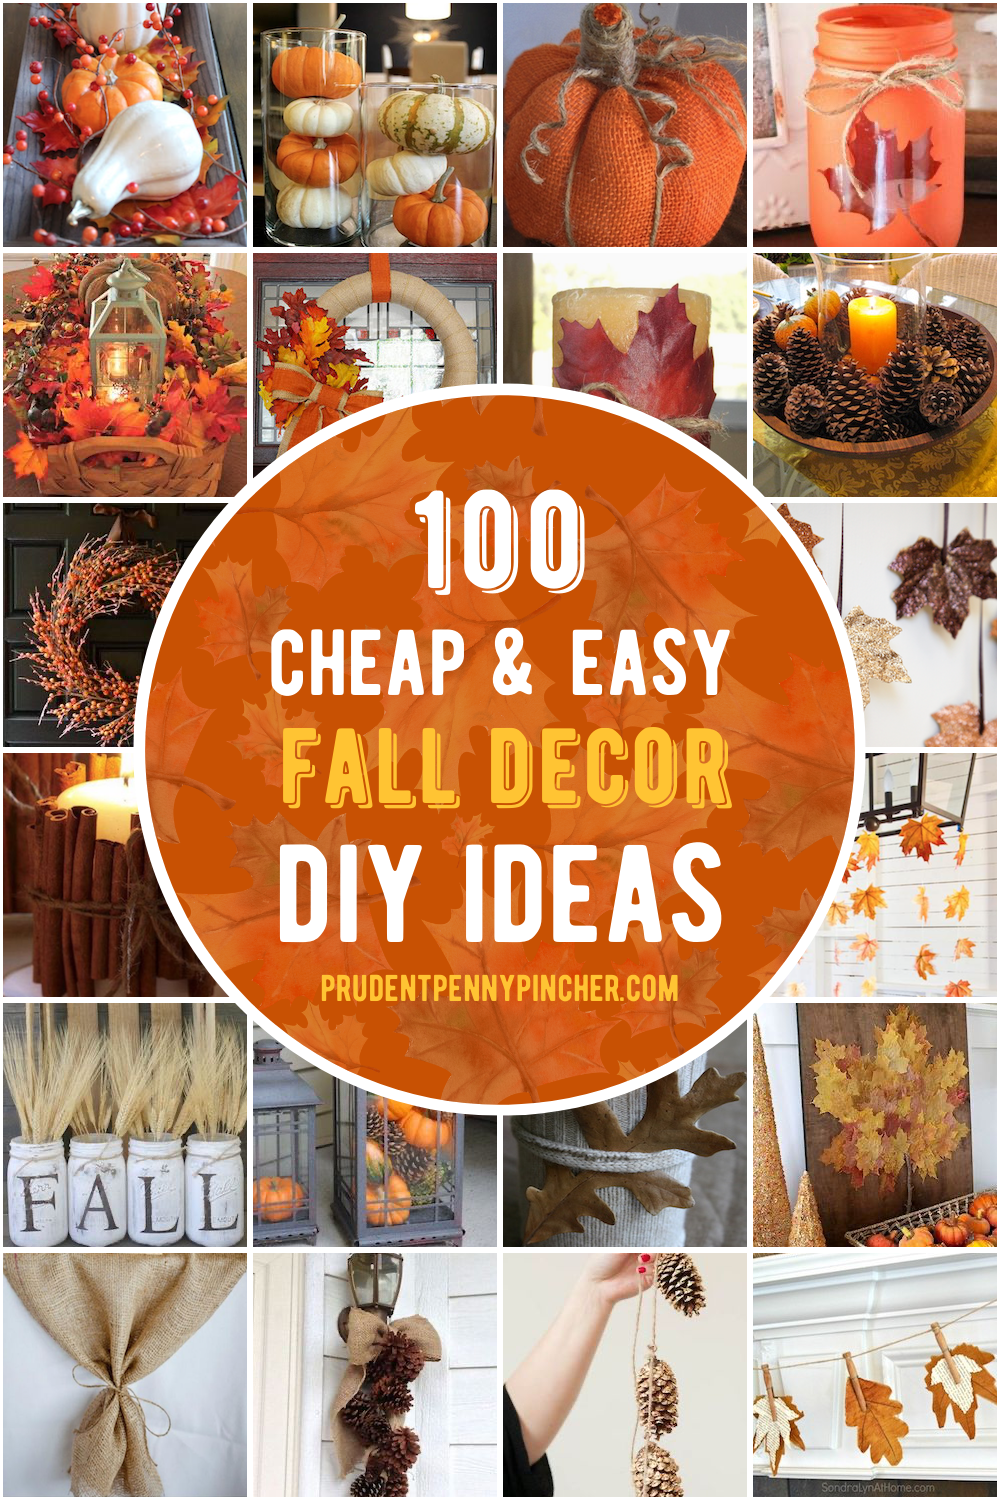 100 Cheap And Easy Fall Decor Diy Ideas In 2020 Easy Diy Fall